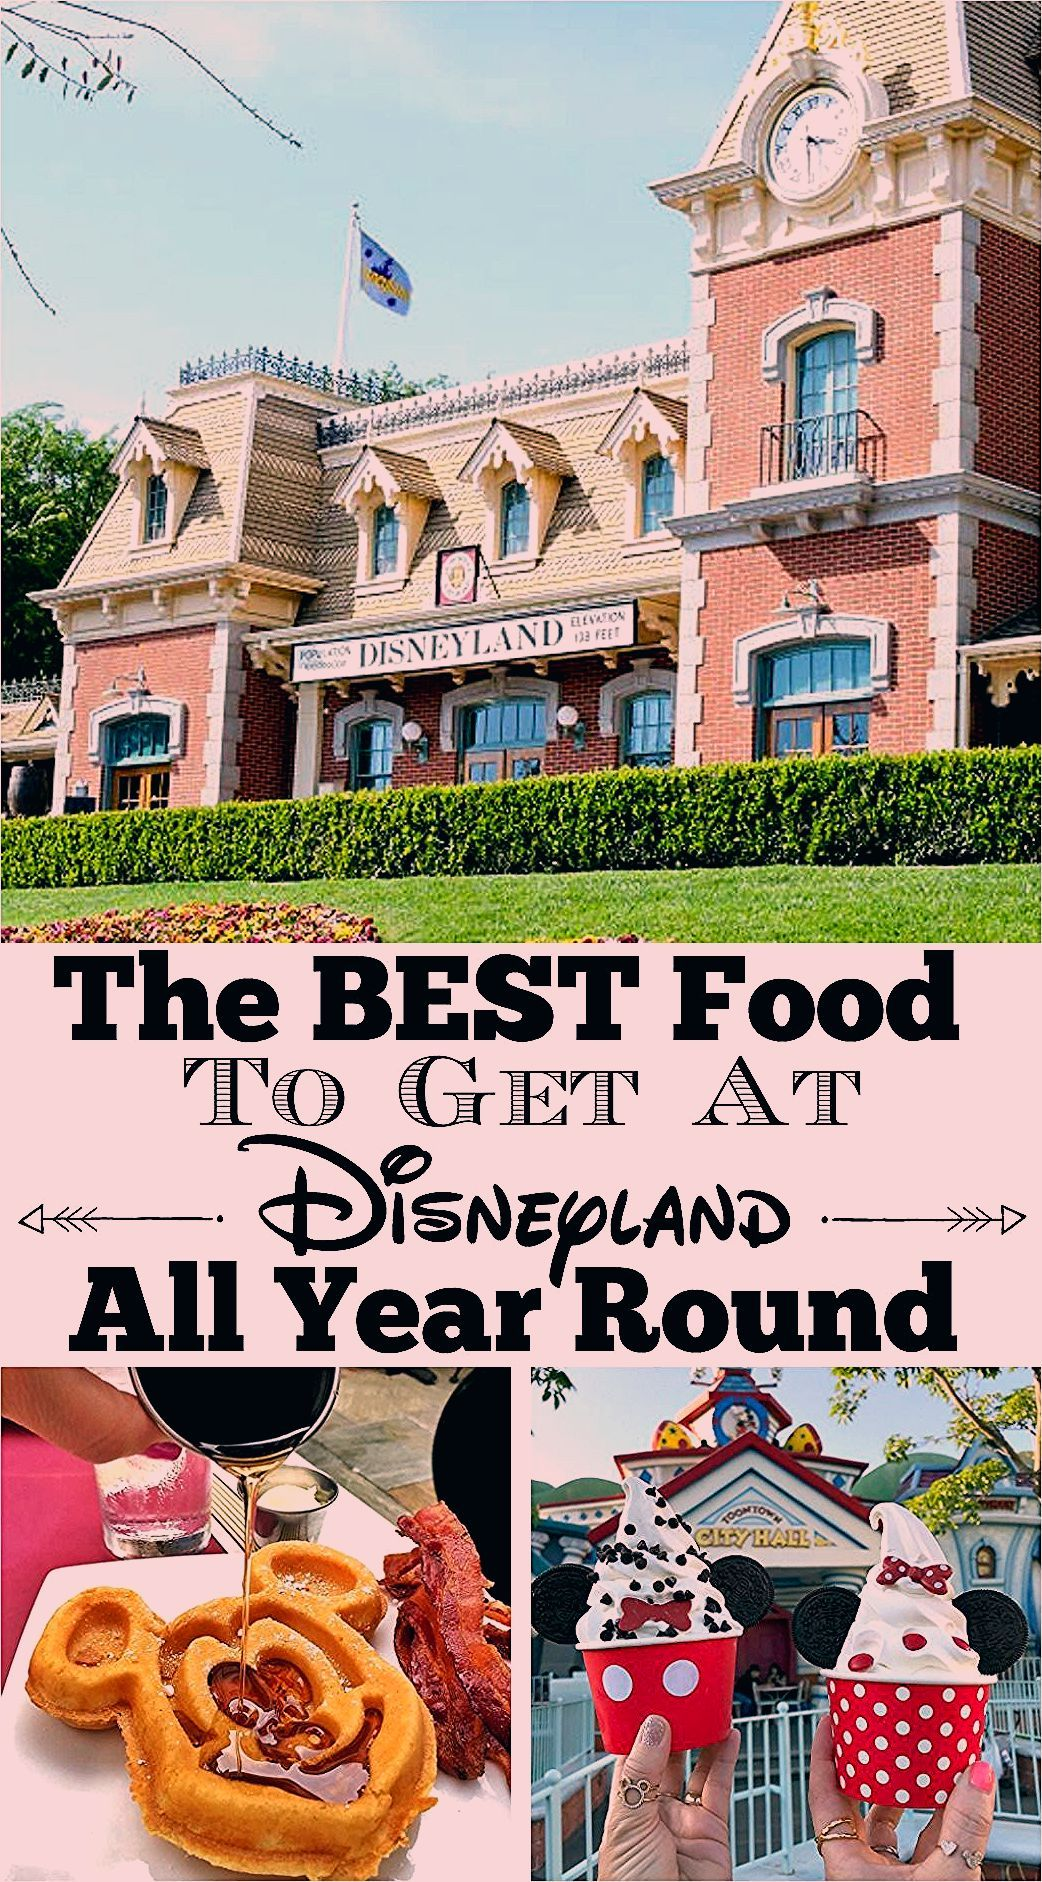 Photo of Best Food at Disneyland Available All Year Round